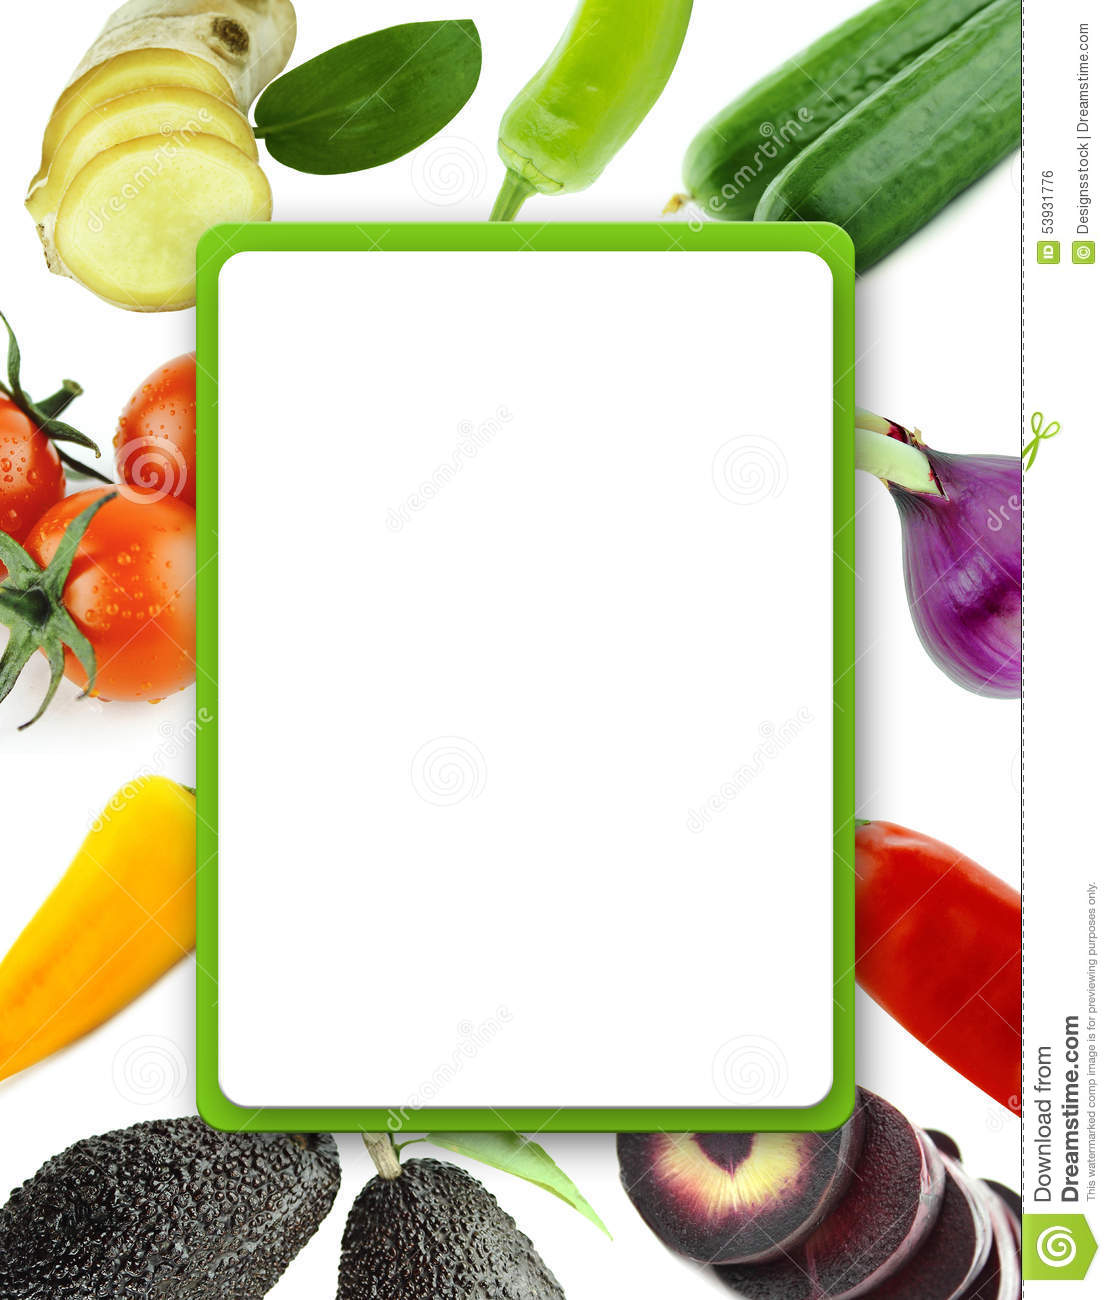 healthy vegetables and fruits cucumber fruit or vegetable